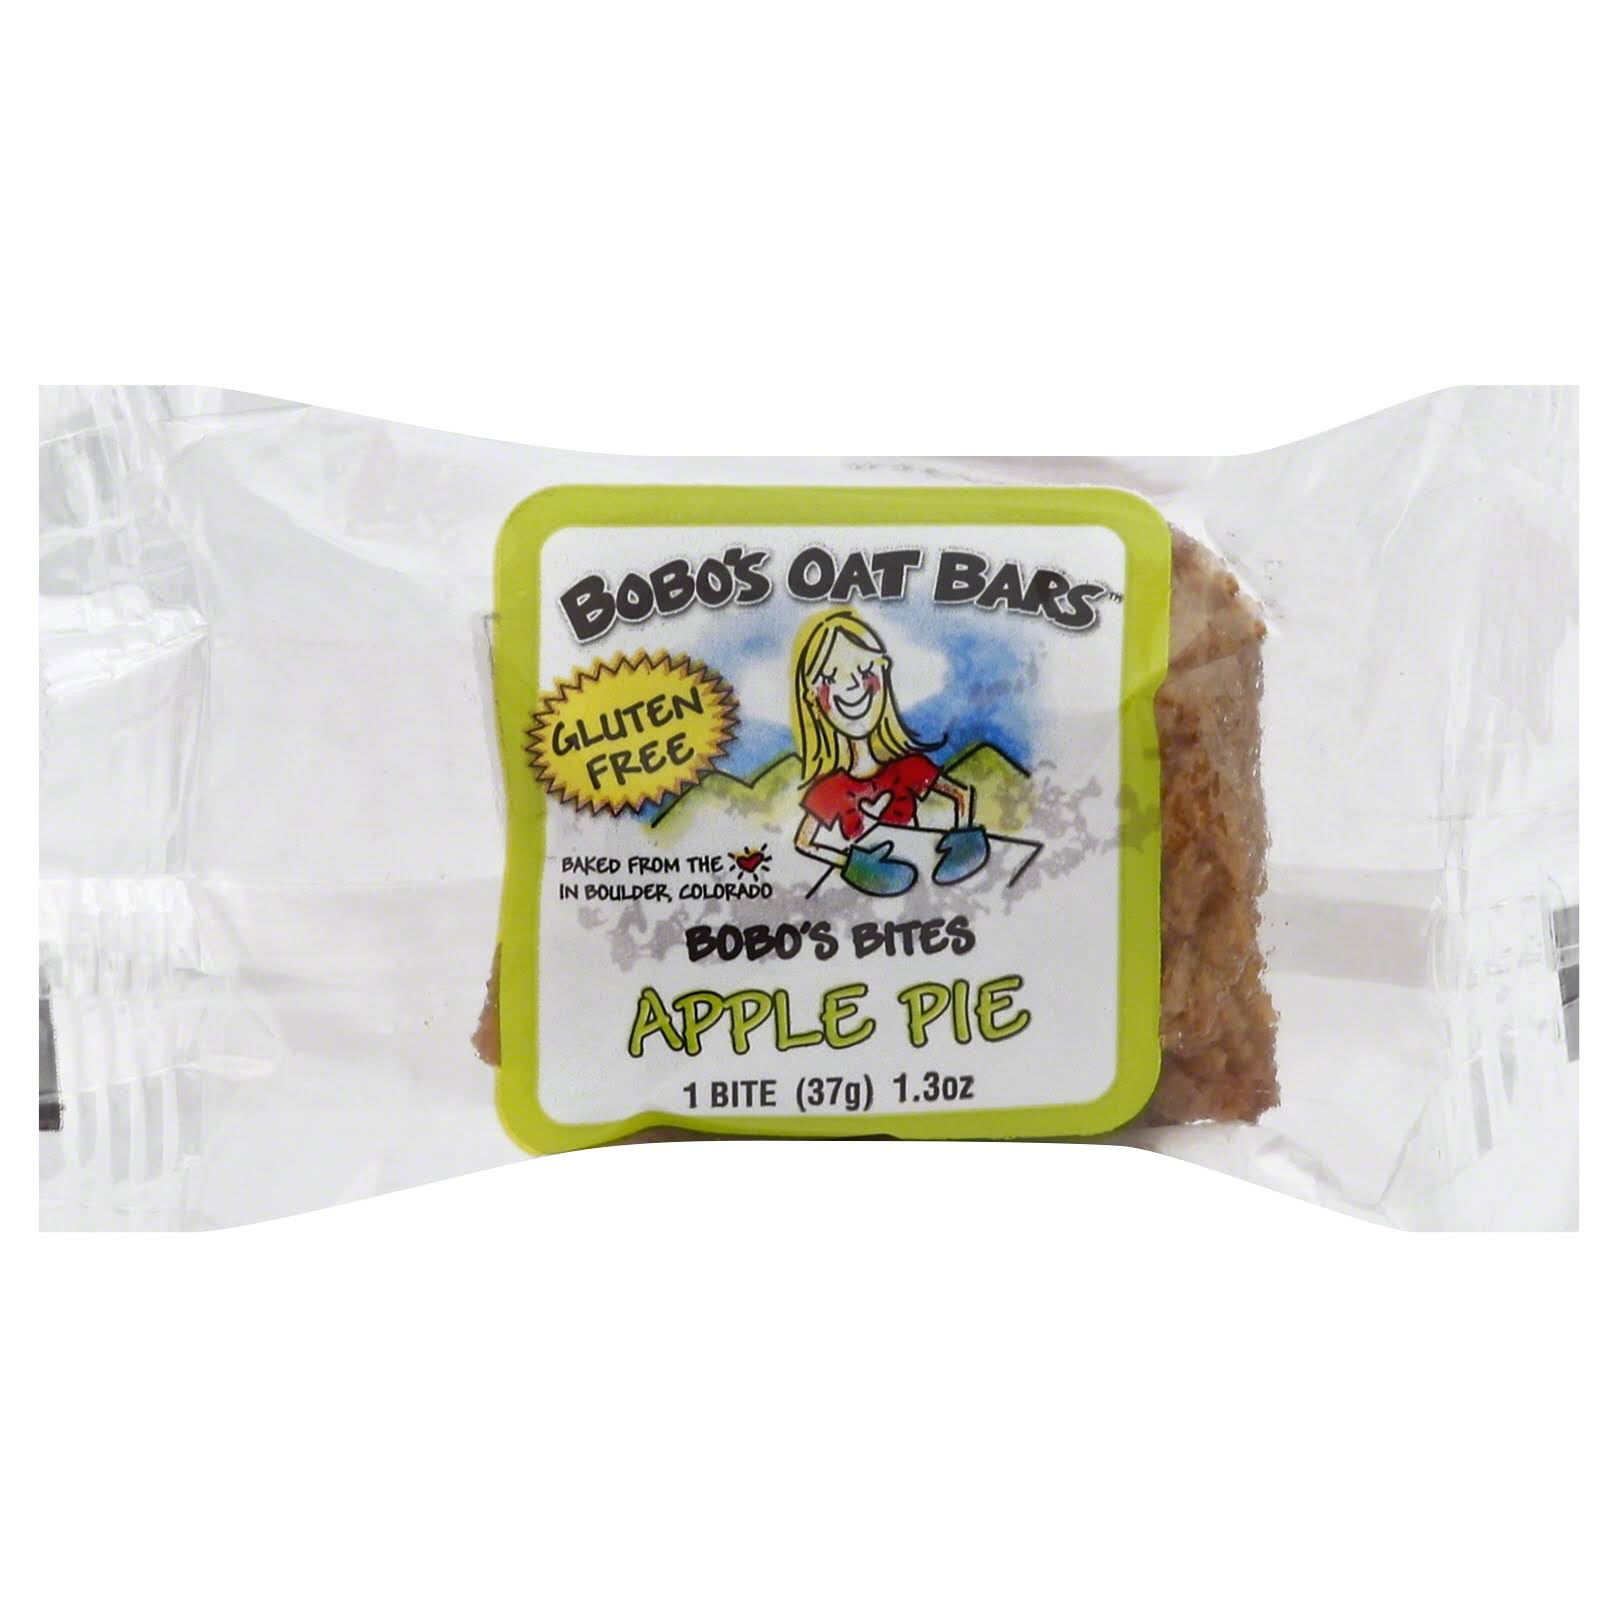 Bobo's Oat Bars Bobo's Bites, Apple Pie - 1.3 oz packet